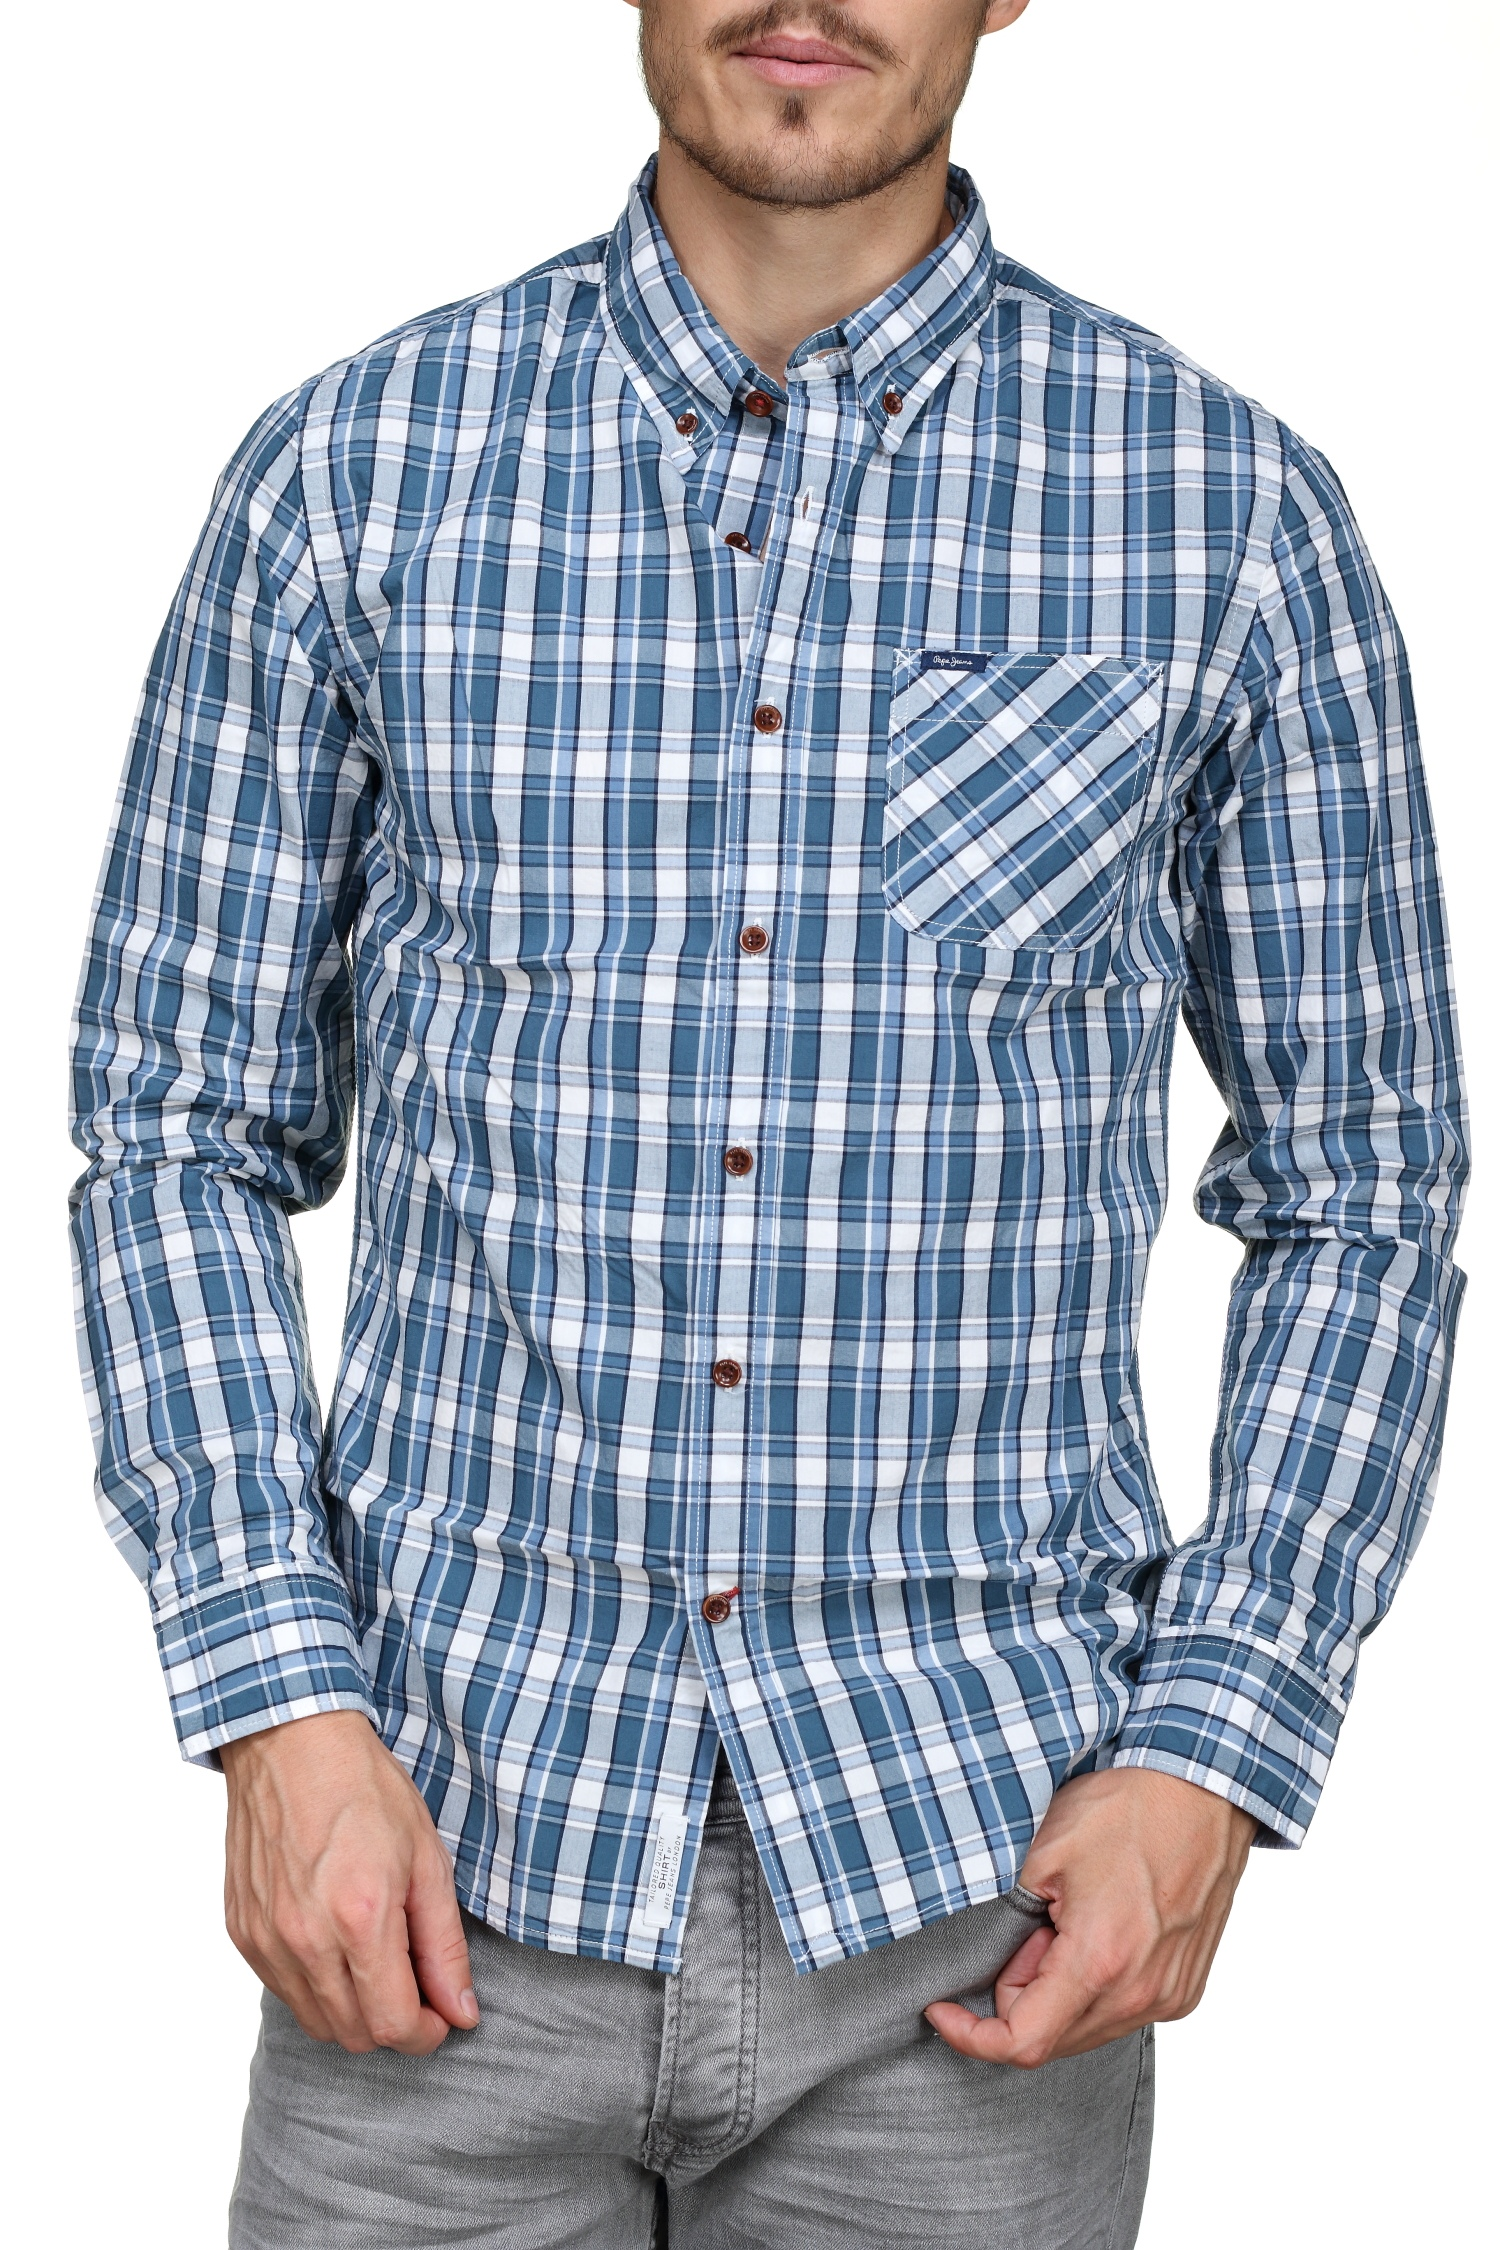 http://www.leadermode.com/157698/pepe-jeans-curtis-pm305460-564-chambray.jpg